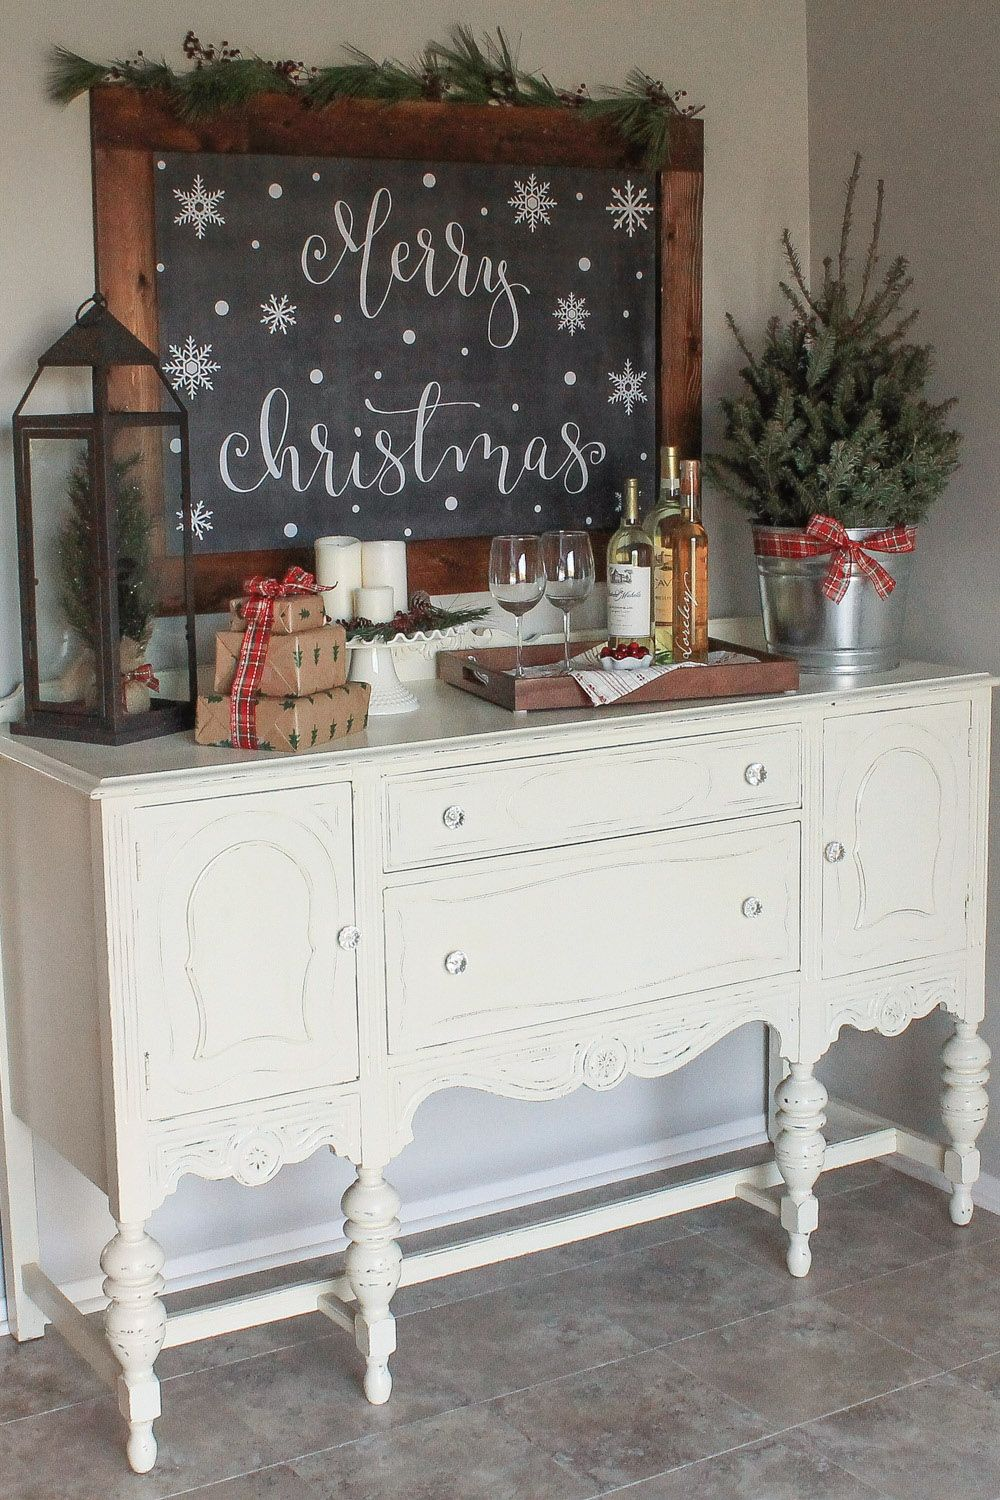 cozy christmas kitchen wine nook christmas decor and ideas christmas kitchen cozy christmas. Black Bedroom Furniture Sets. Home Design Ideas